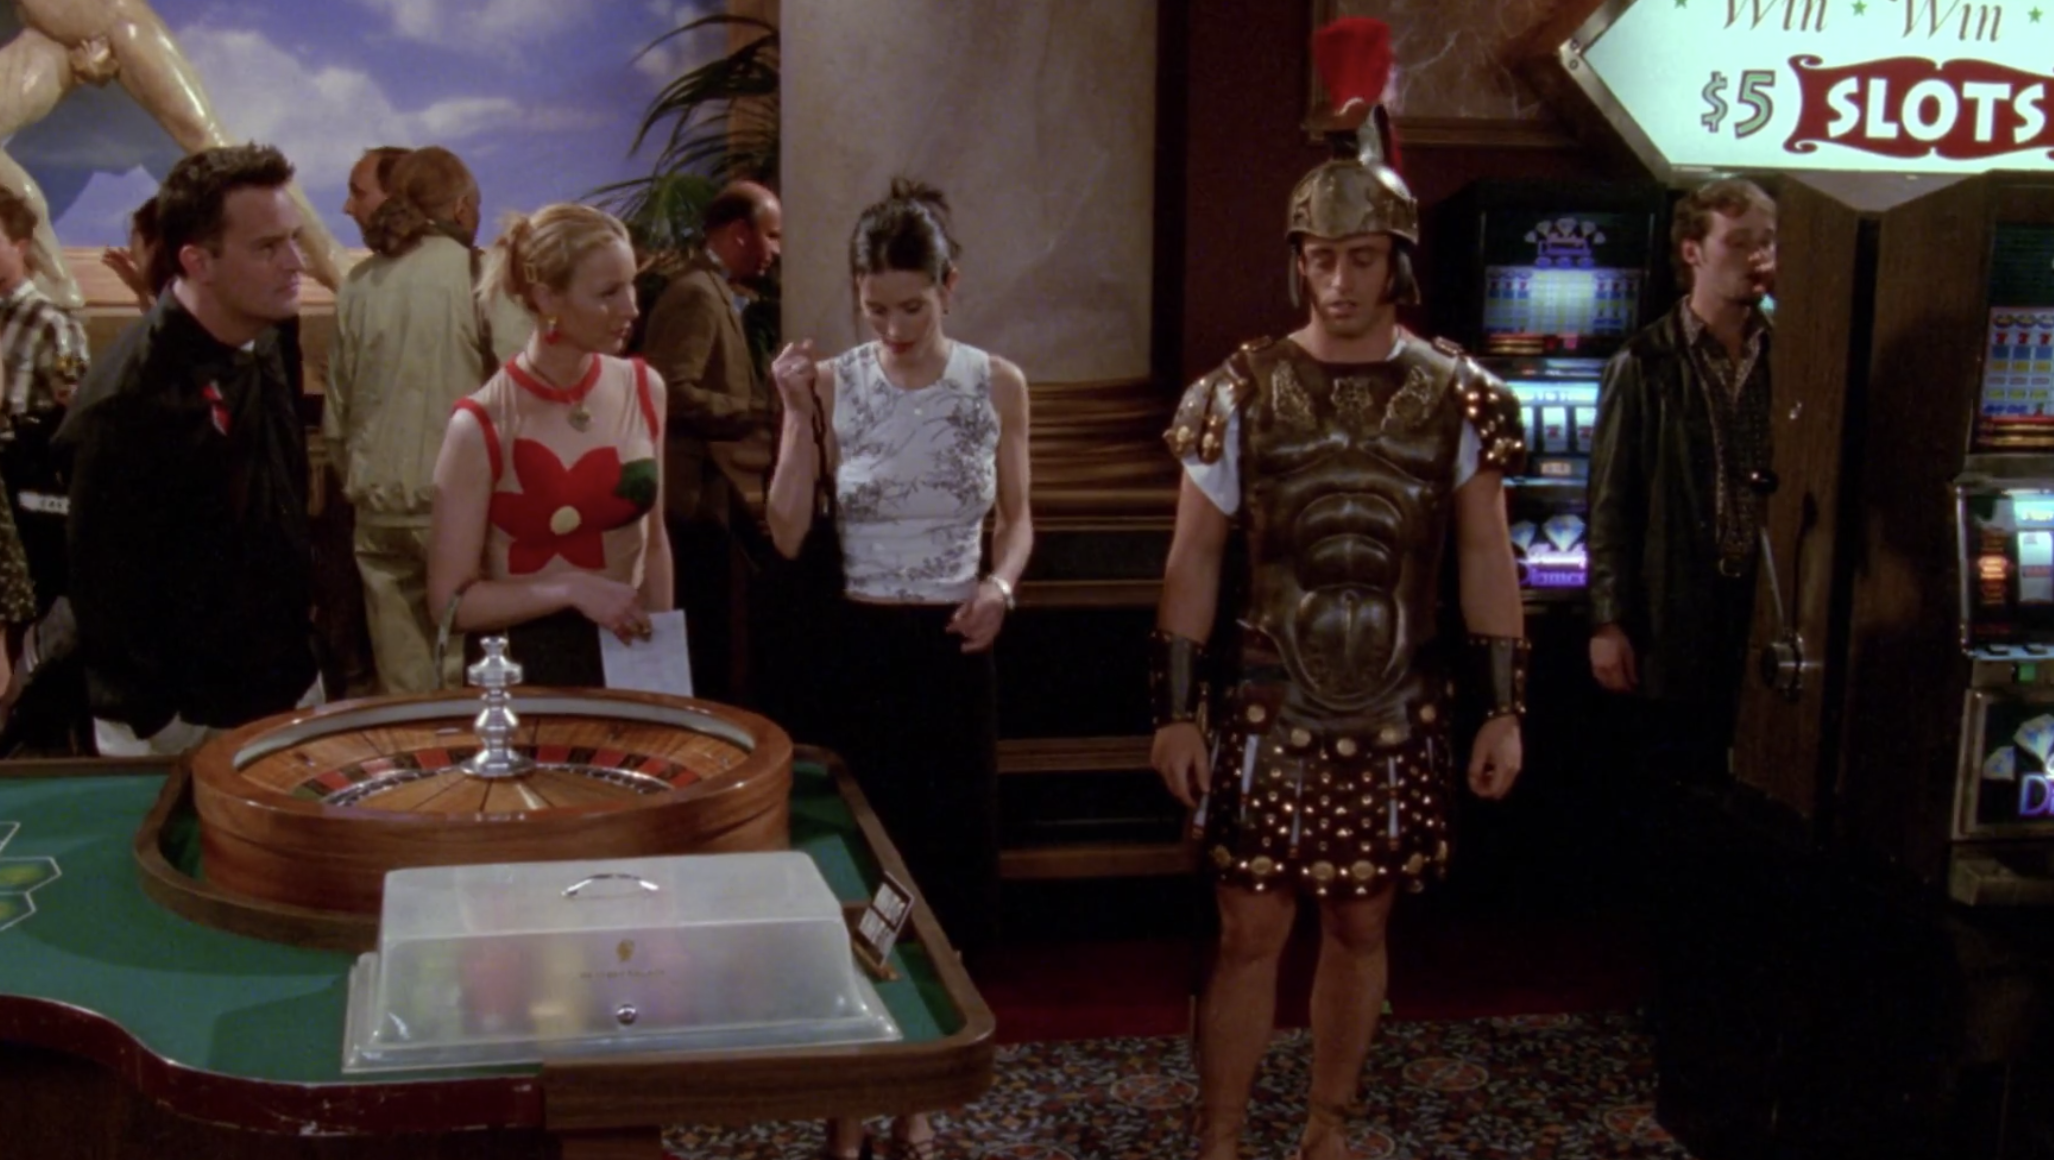 Phoebe, Monica, and Chandler finding Joey at a casino in a Trojan costume